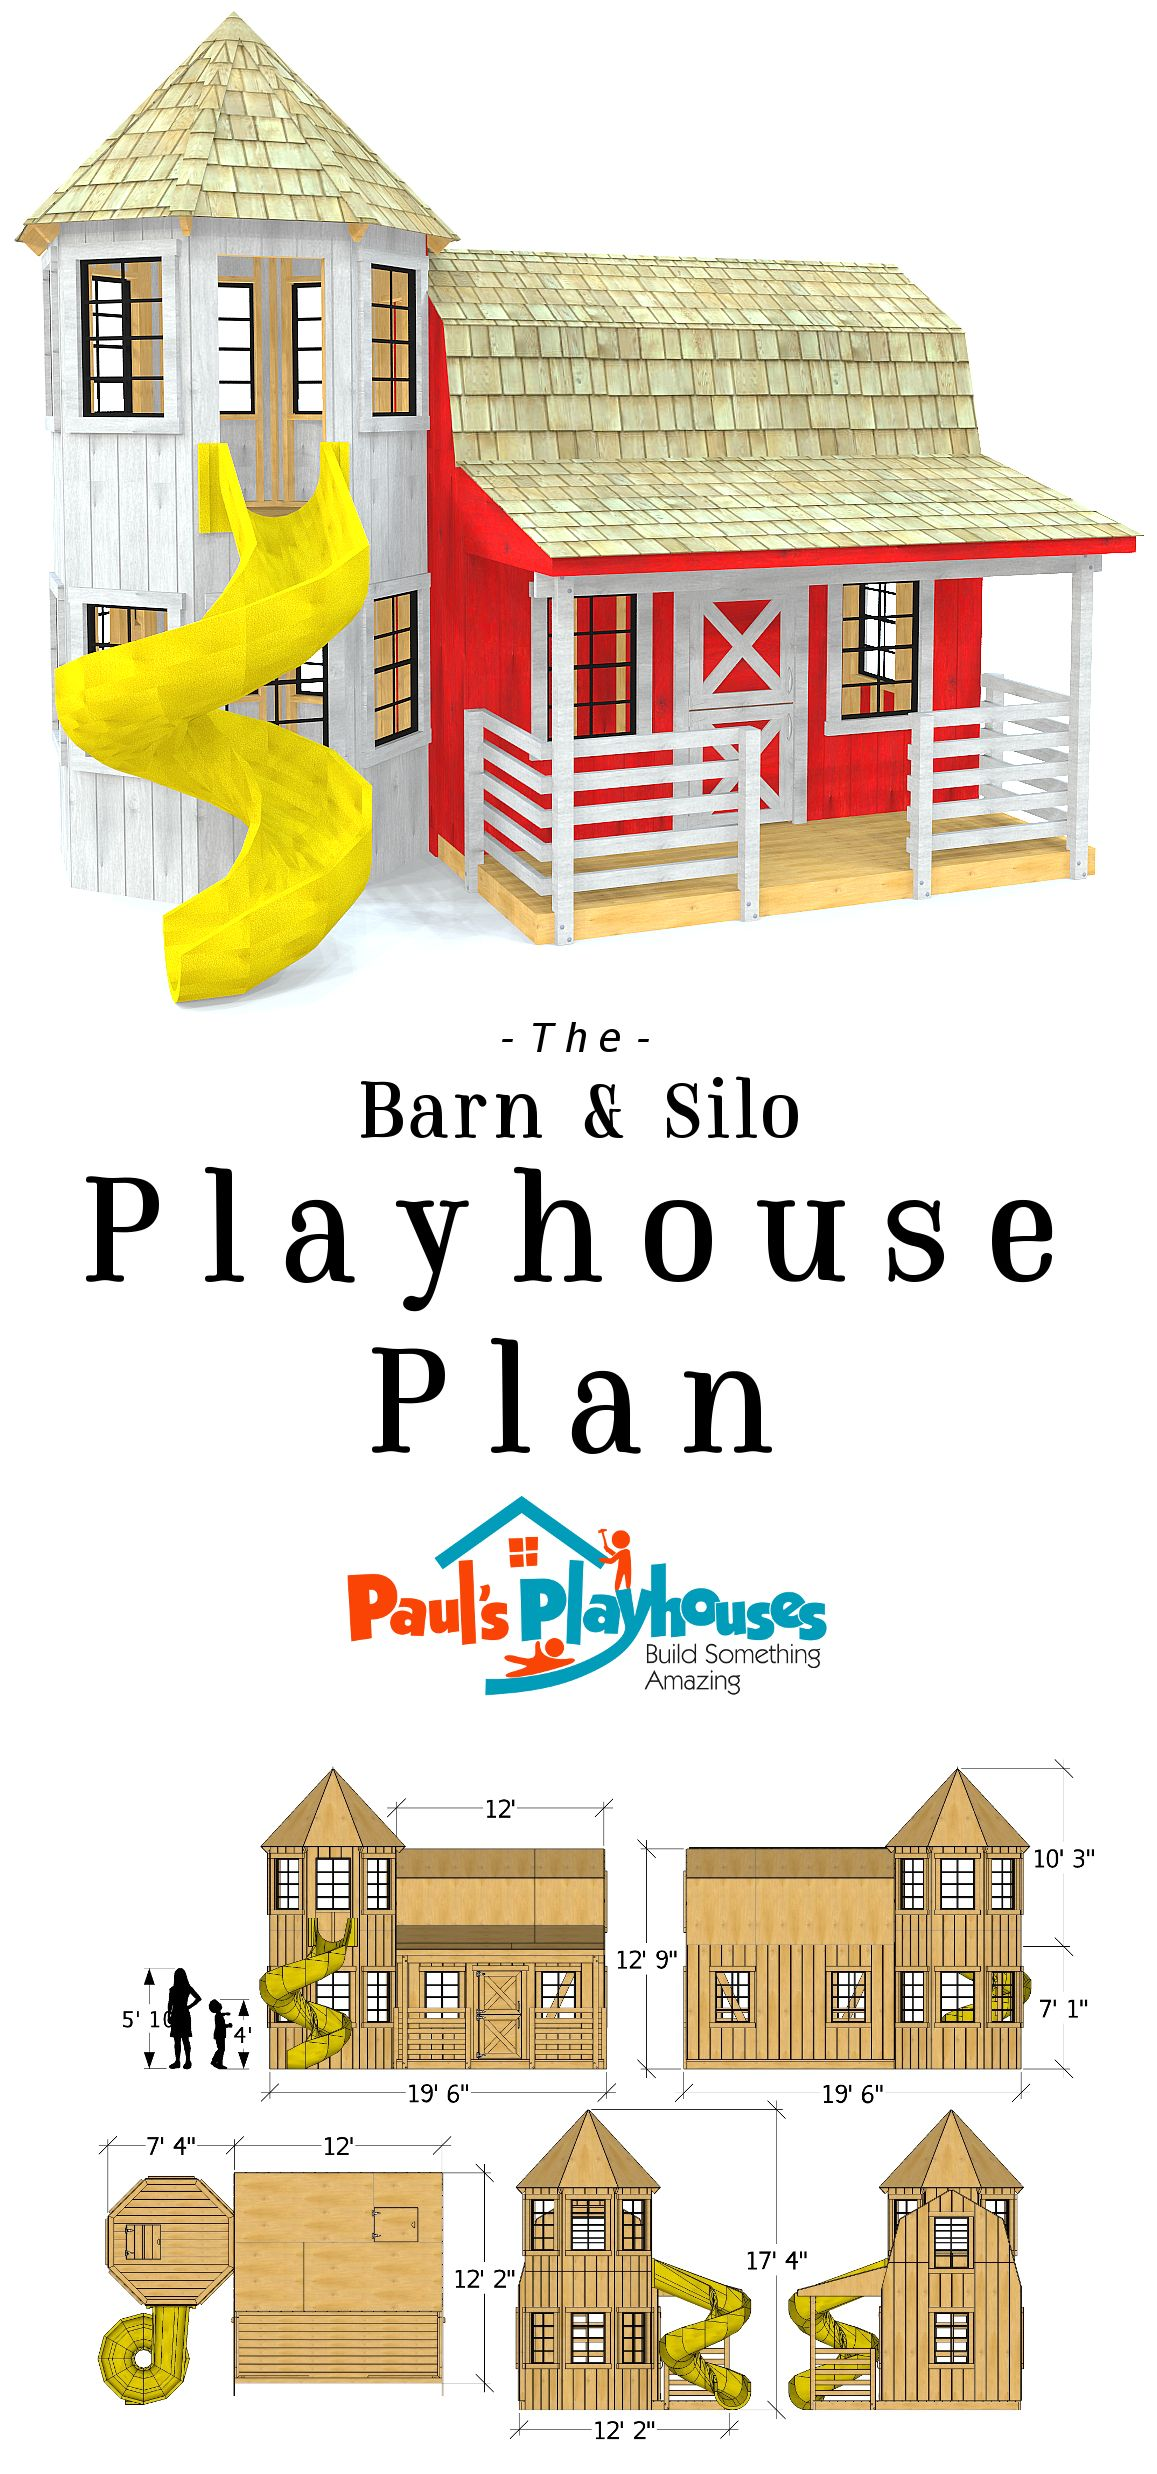 Barn silo playhouse plan pinterest 12x19 two story barn playhouse plan over 300 ft in usable play space malvernweather Choice Image